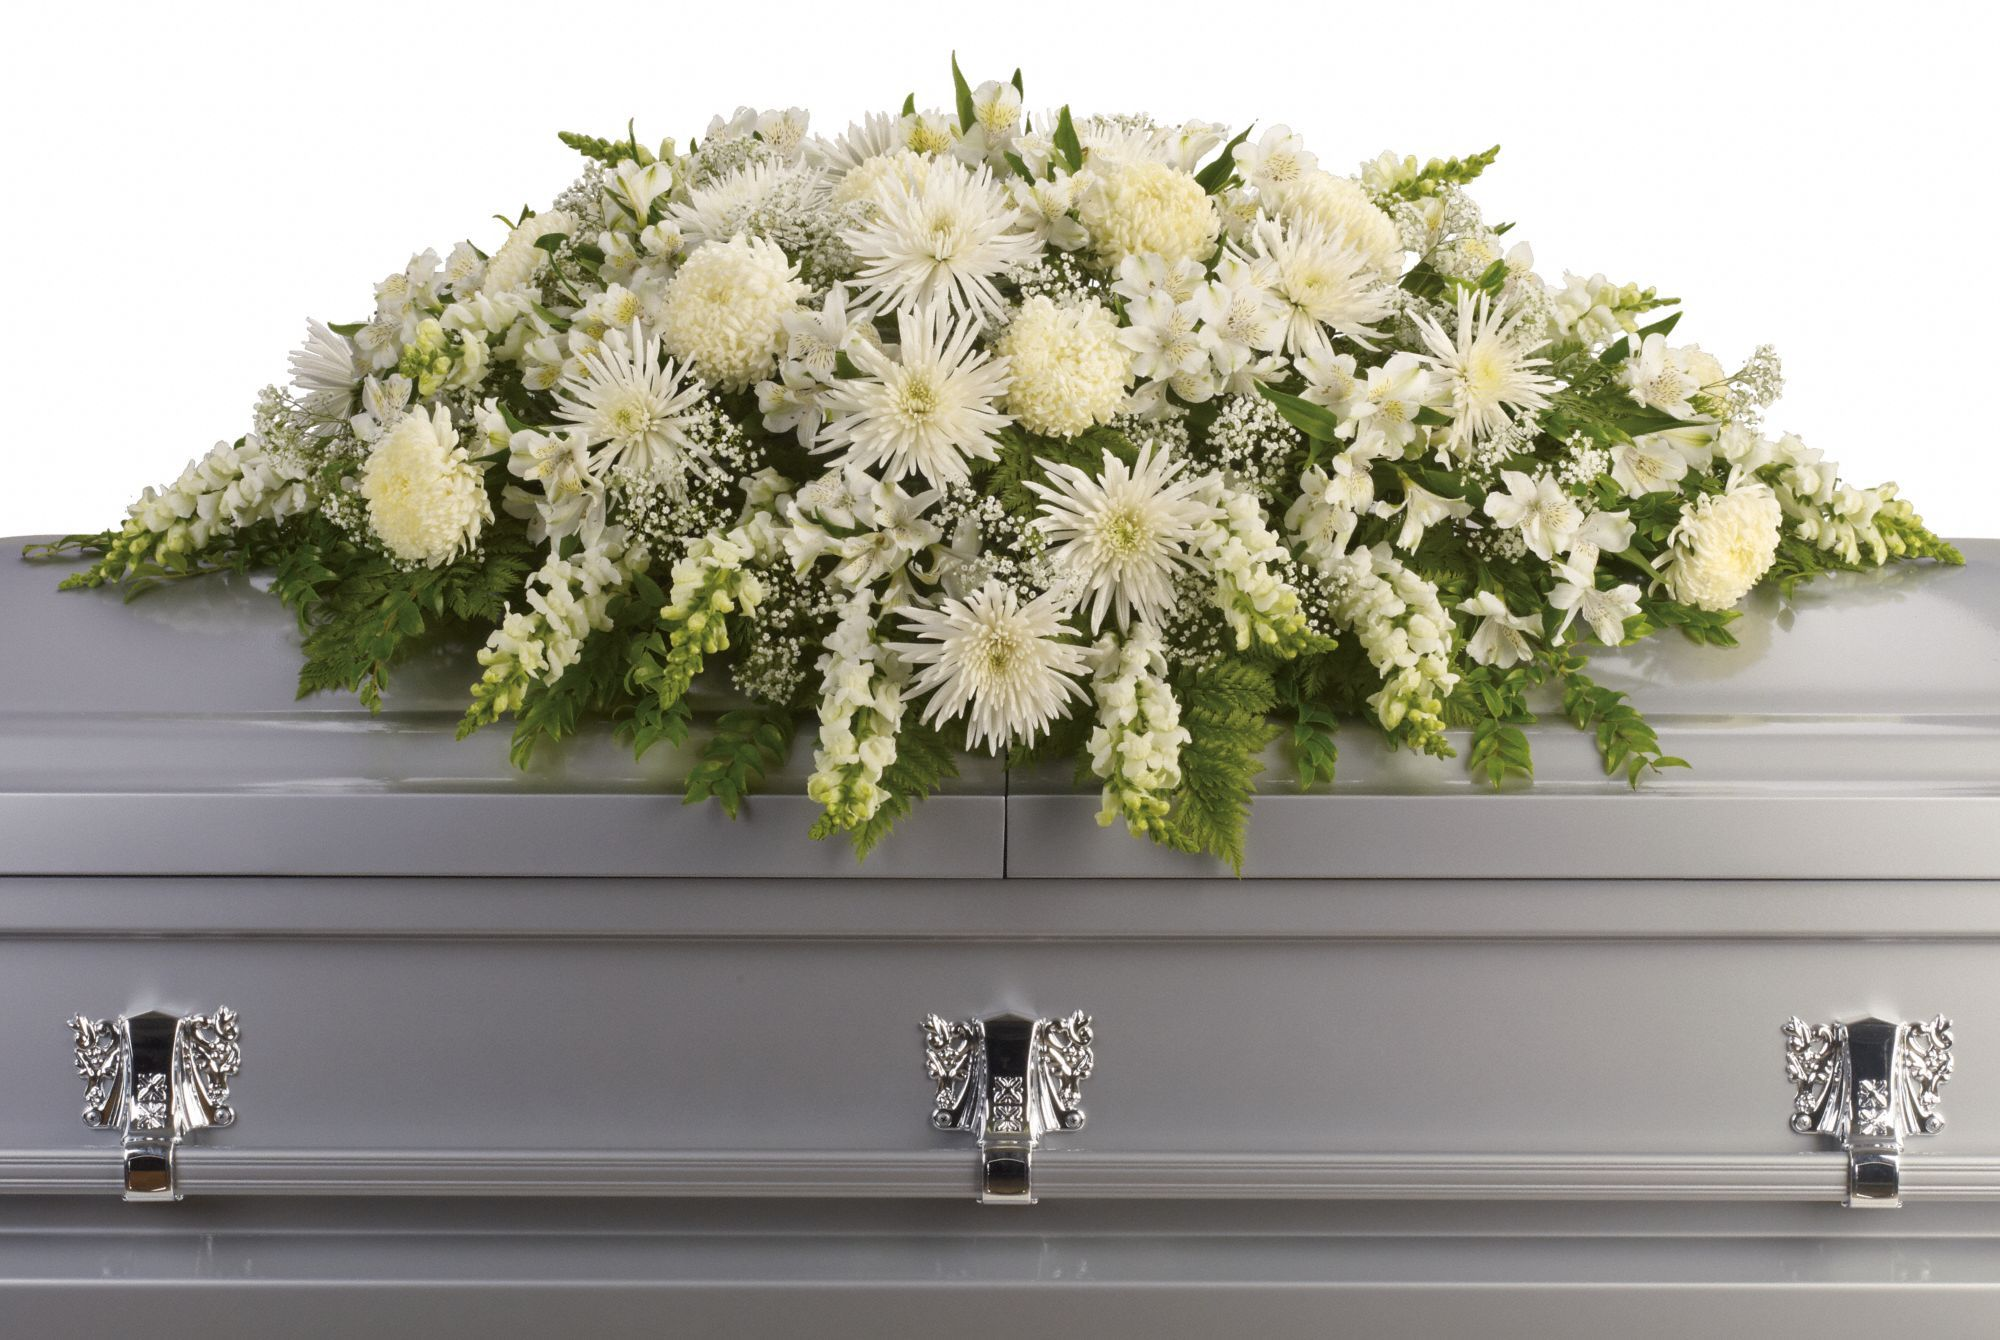 Funeral flowers calgary choice image flower wallpaper hd this exquisite casket spray of artistically arranged white flowers enduring light casket spray by calgary flowers mightylinksfo